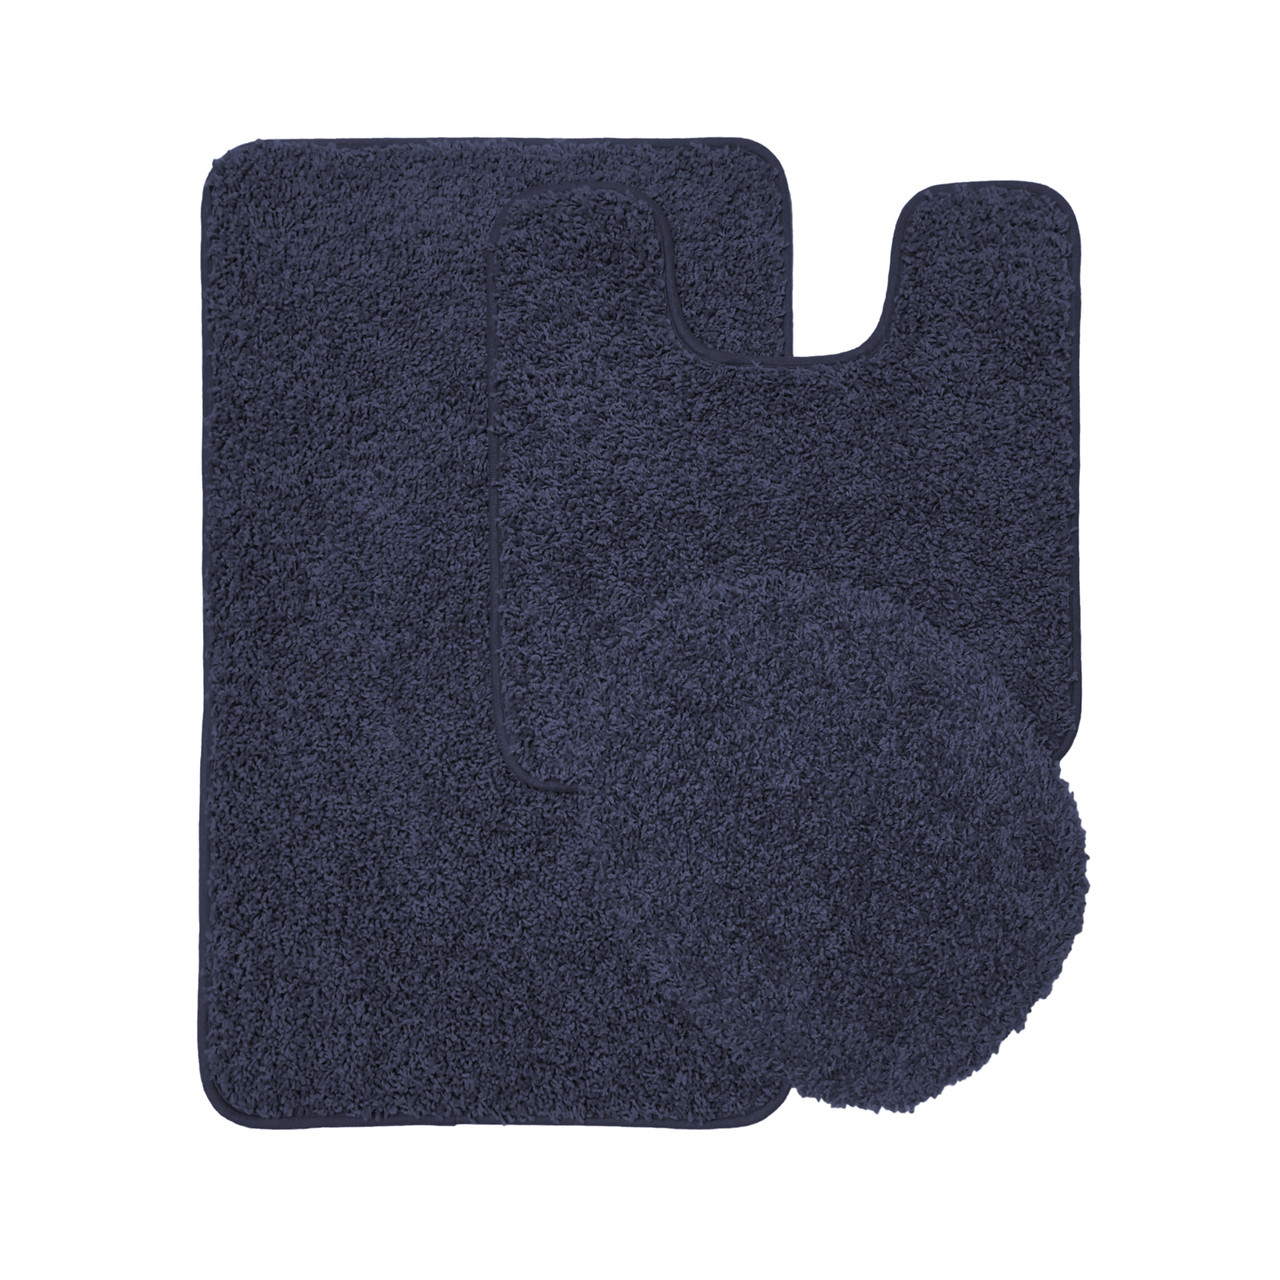 Bathroom rug set - Layla Oversized 3 Piece Shaggy Bathroom Rug Set Bath Mat Contour Rug Lid